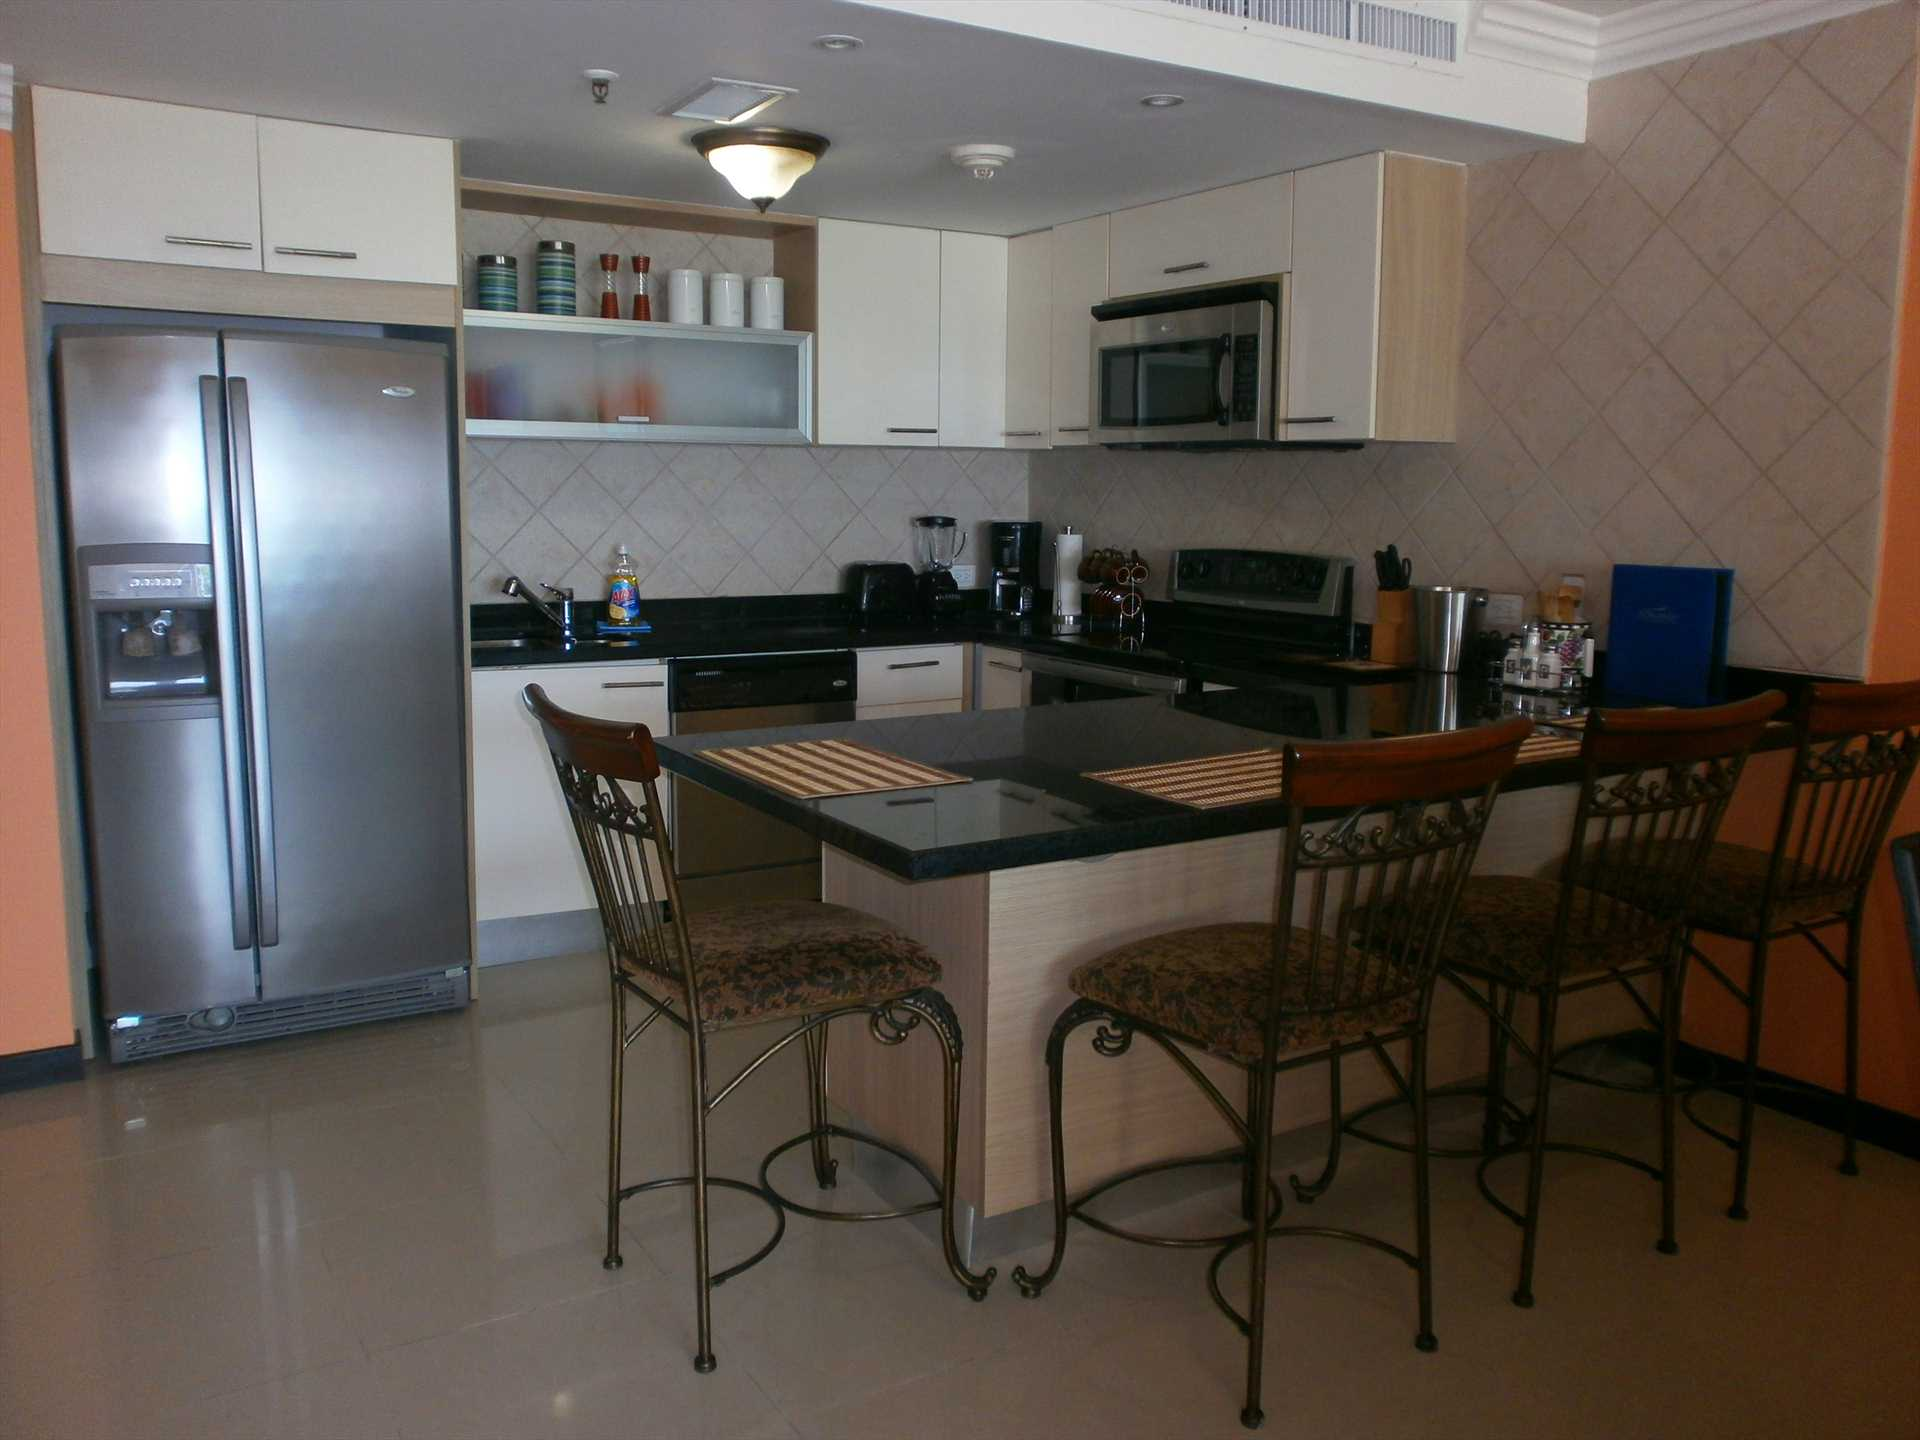 A full-size fully equipped modern kitchen with 4-seat breakfast/bar table.